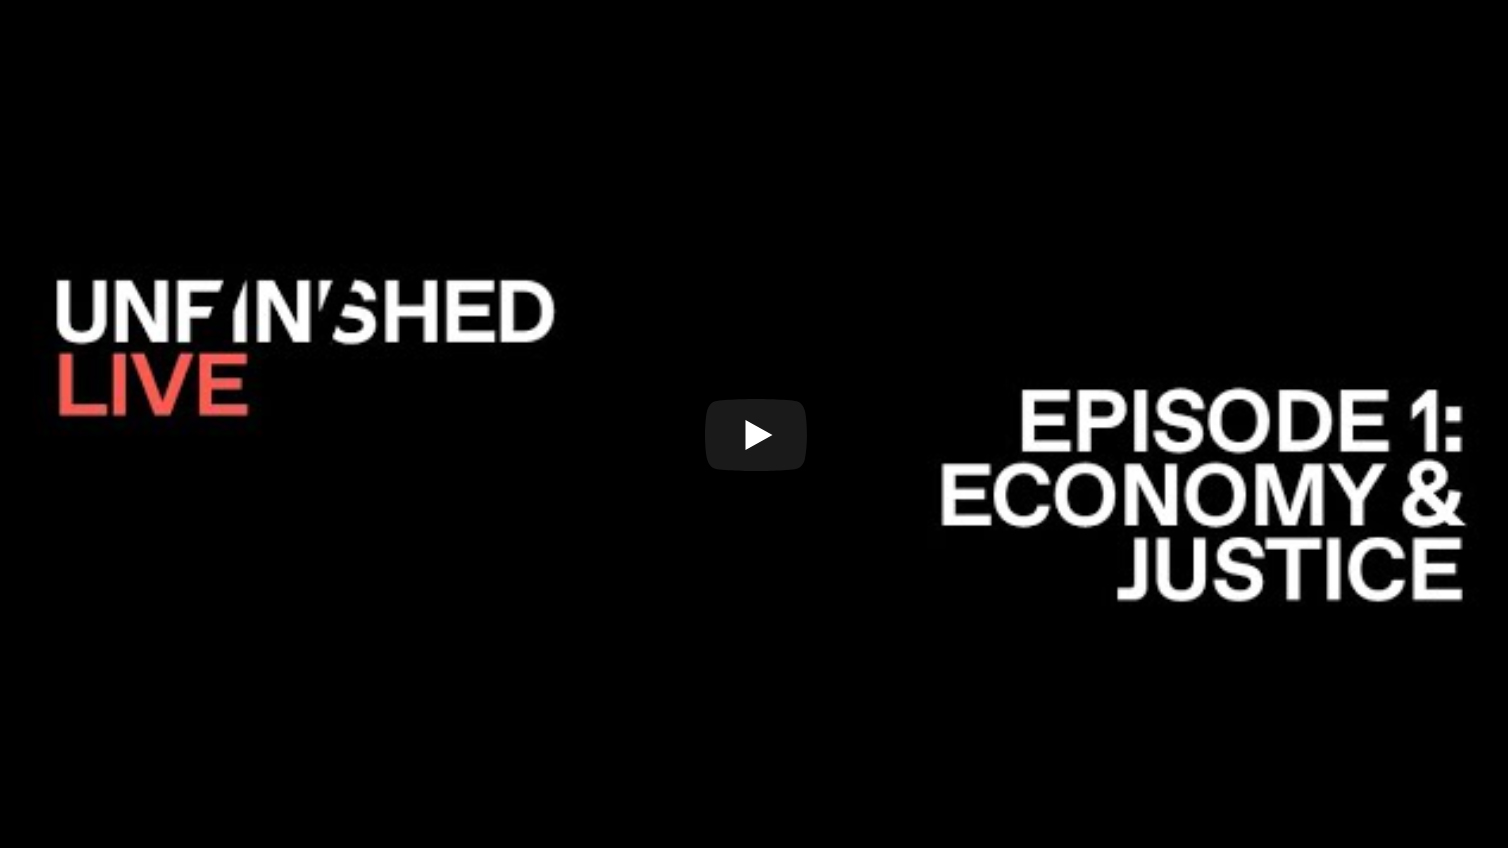 Unfinished Live: Economy & Justice